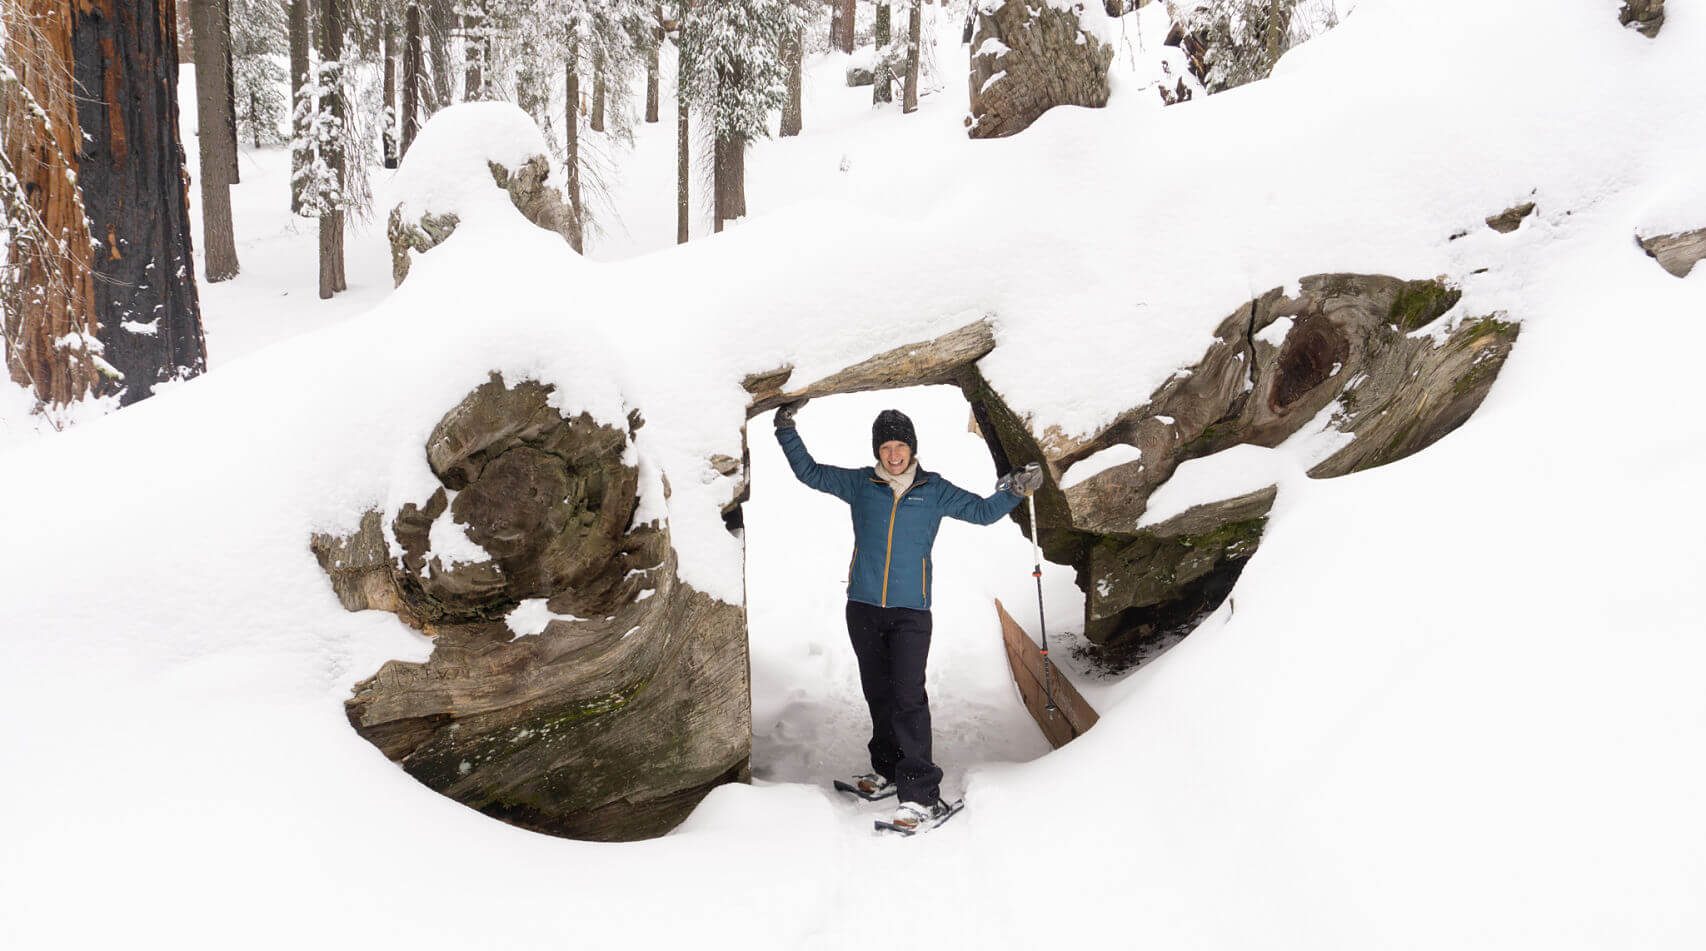 Wendy under a Giant Sequoia--Sequoia National Park in Winter